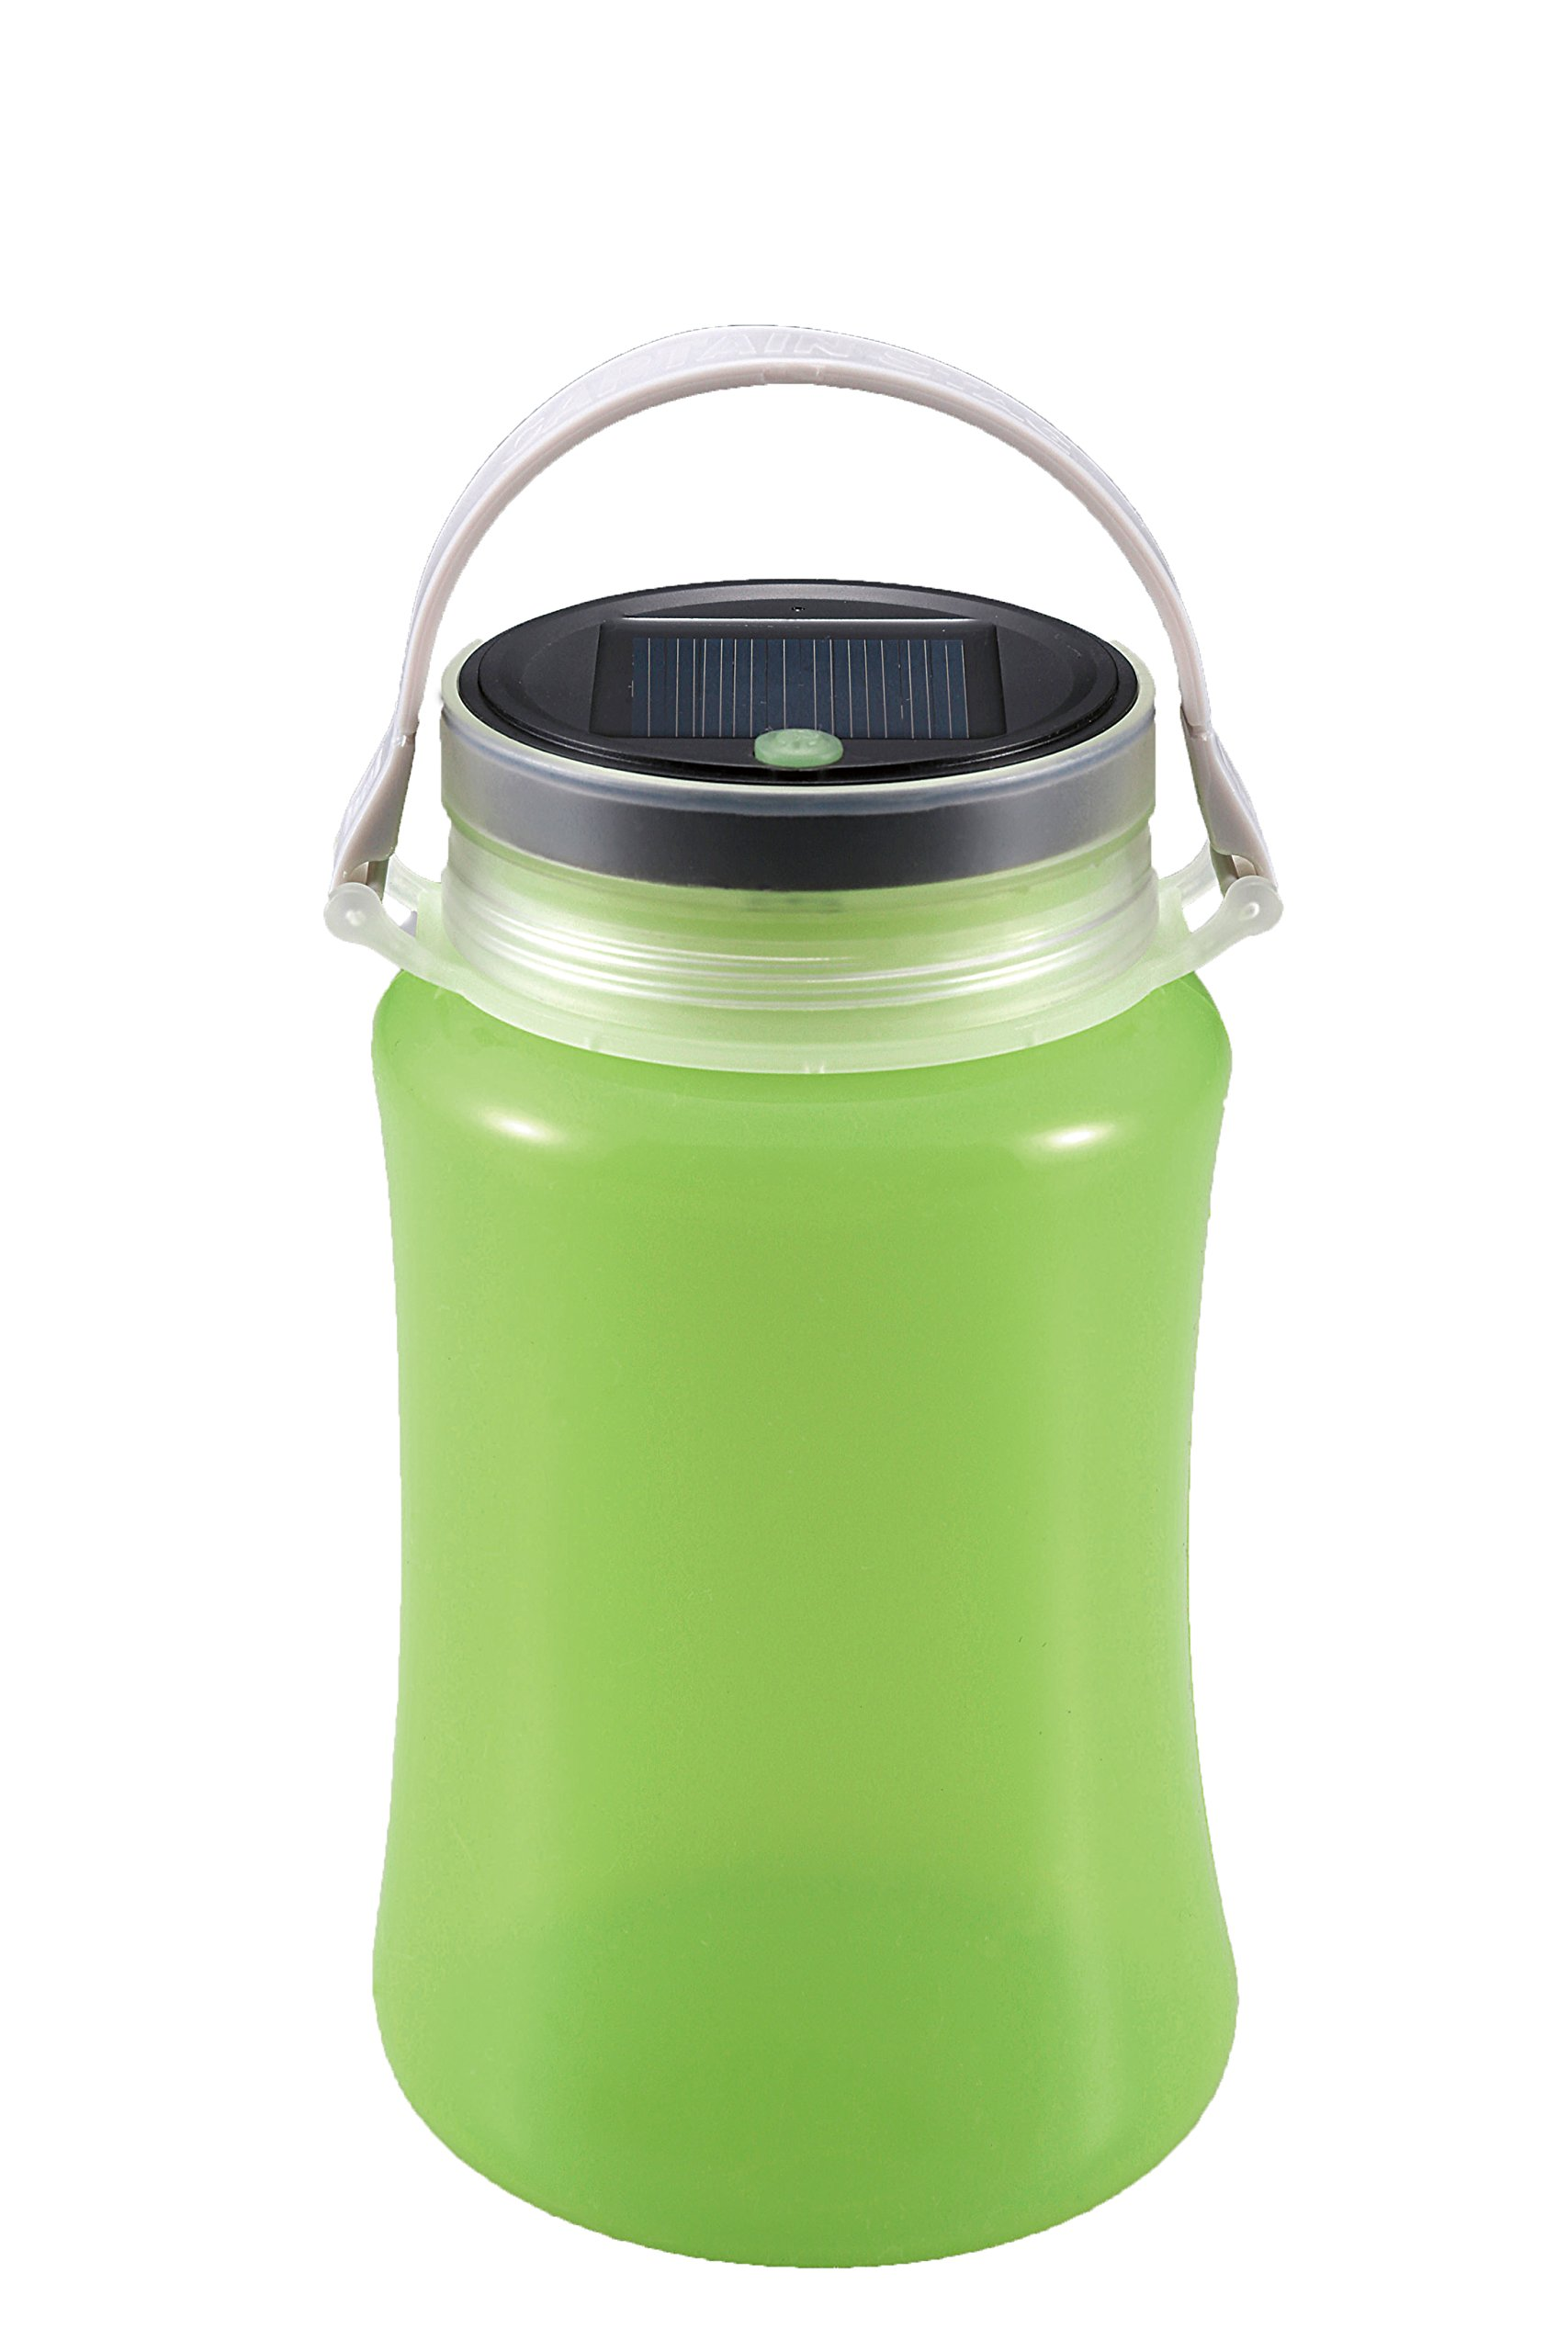 Captain Stagg (CAPTAIN STAG) floating LED lantern Solar & USB Rechargeable Green UK-4013